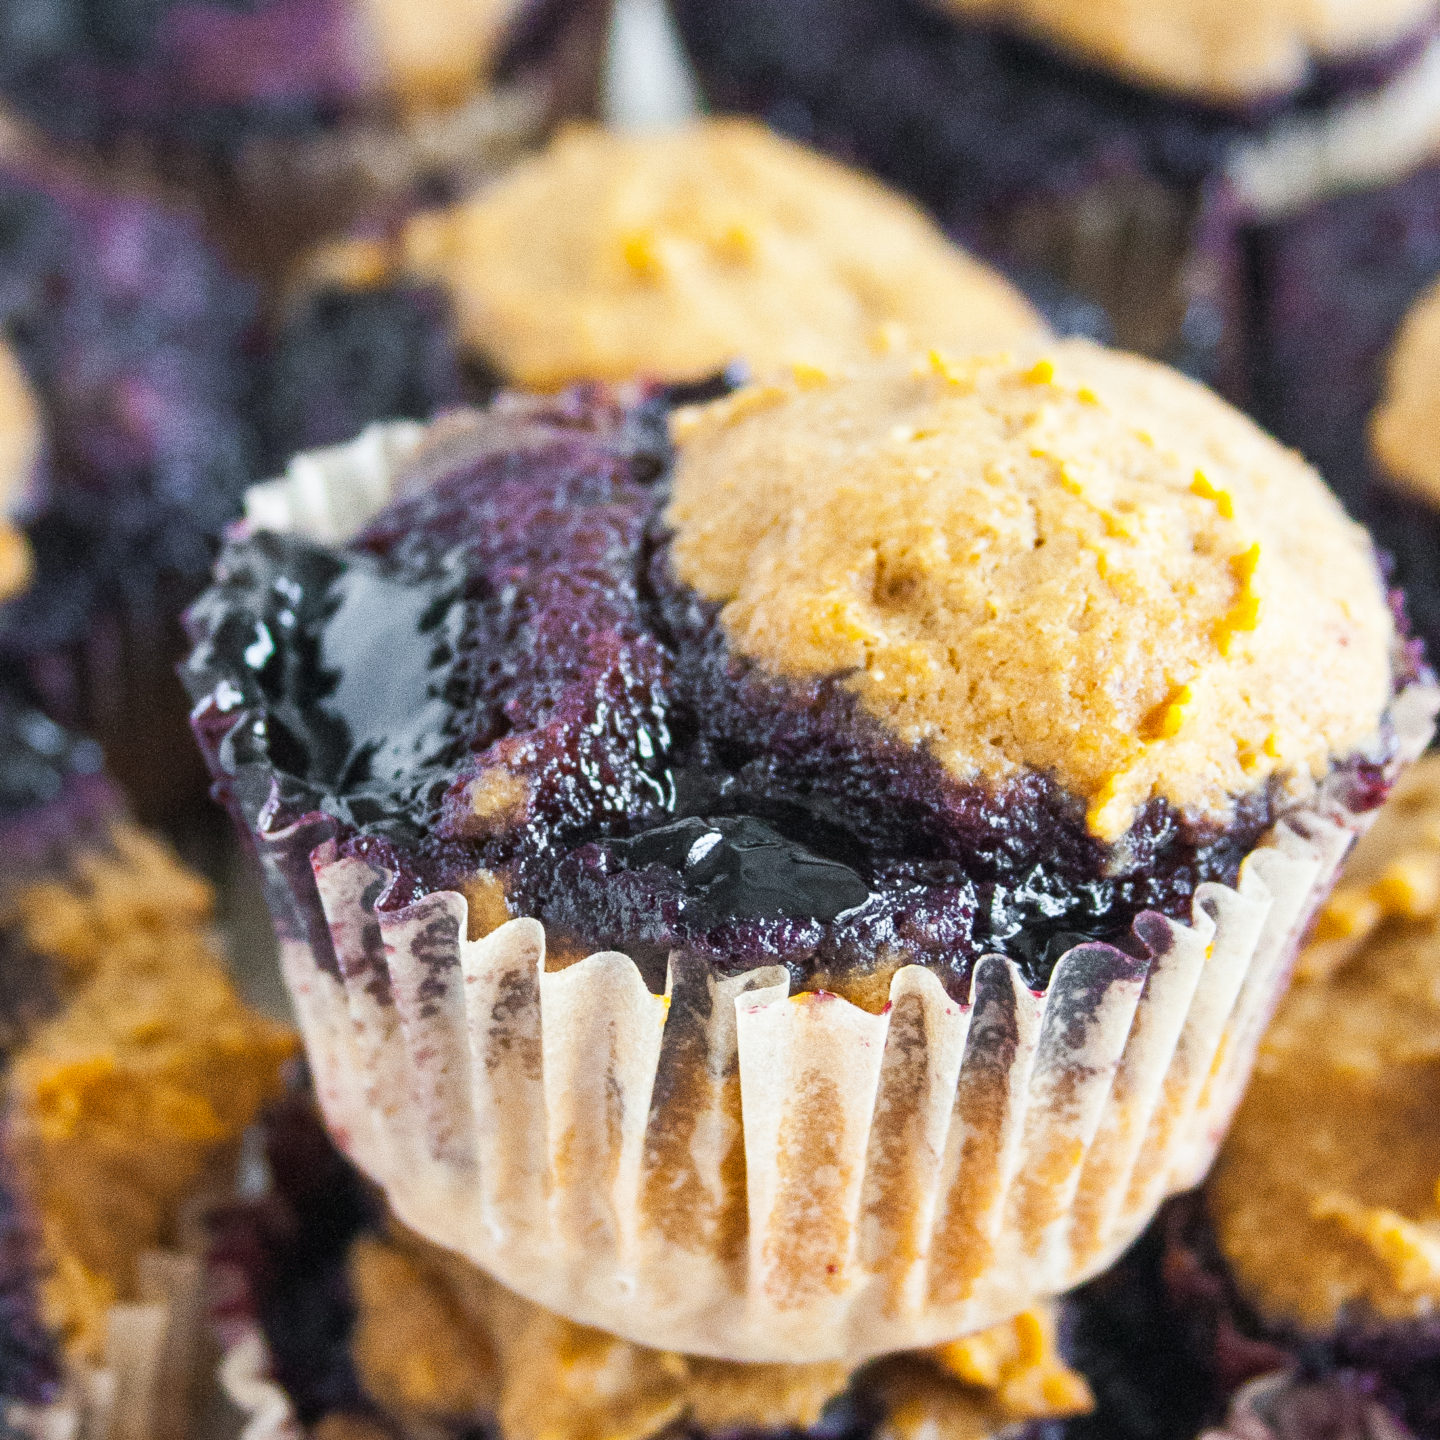 Healthy Peanut Butter Jelly Muffins